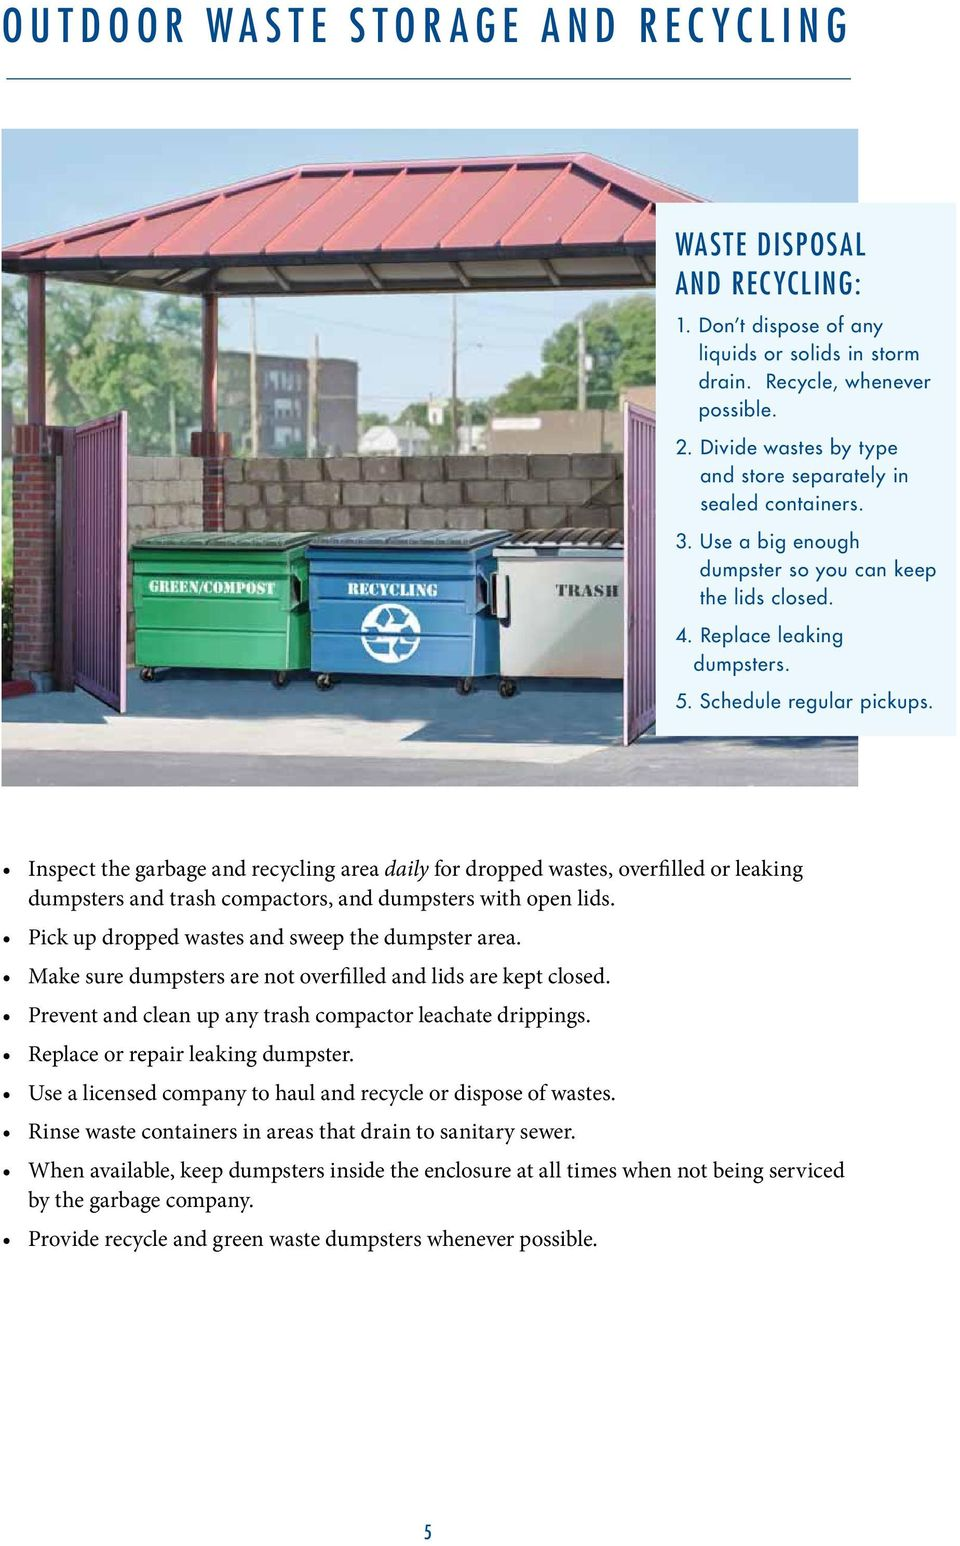 Inspect the garbage and recycling area daily for dropped wastes, overfilled or leaking dumpsters and trash compactors, and dumpsters with open lids. Pick up dropped wastes and sweep the dumpster area.